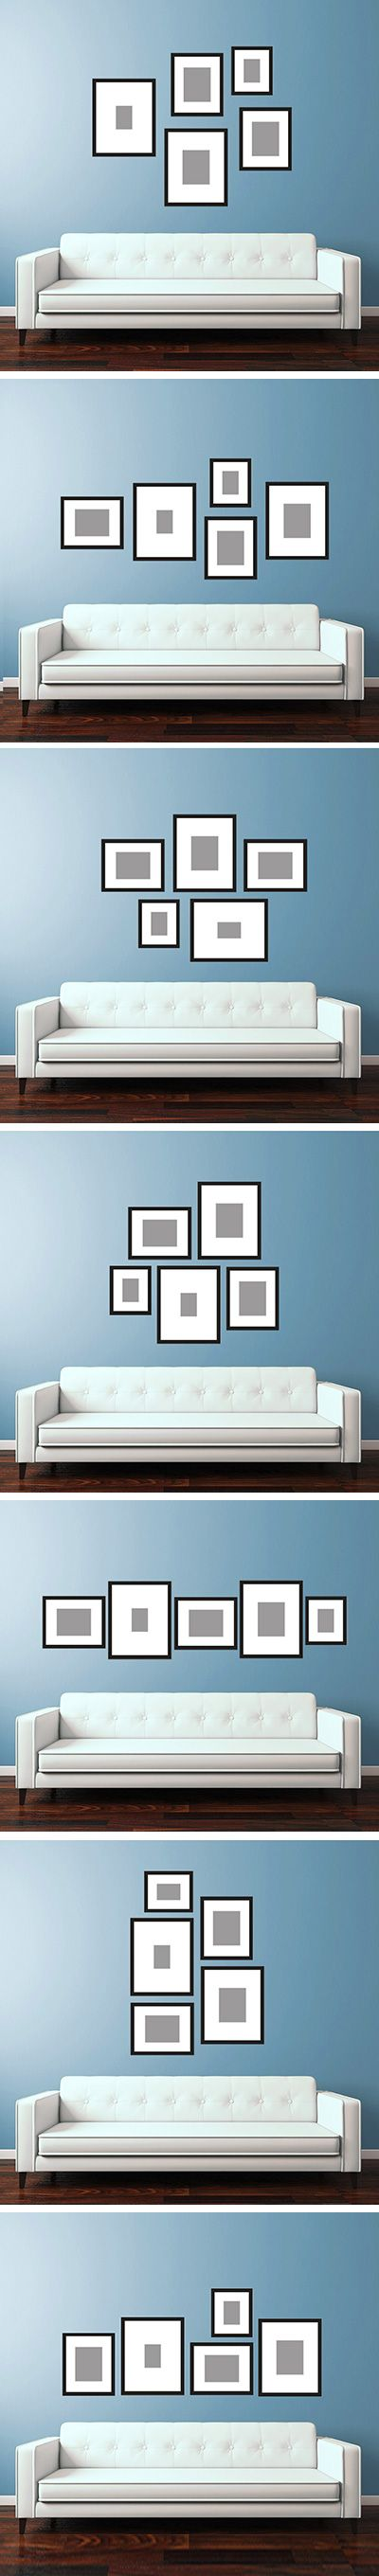 wall templates for hanging pictures - 1000 images about gallery walls or wall collages on pinterest